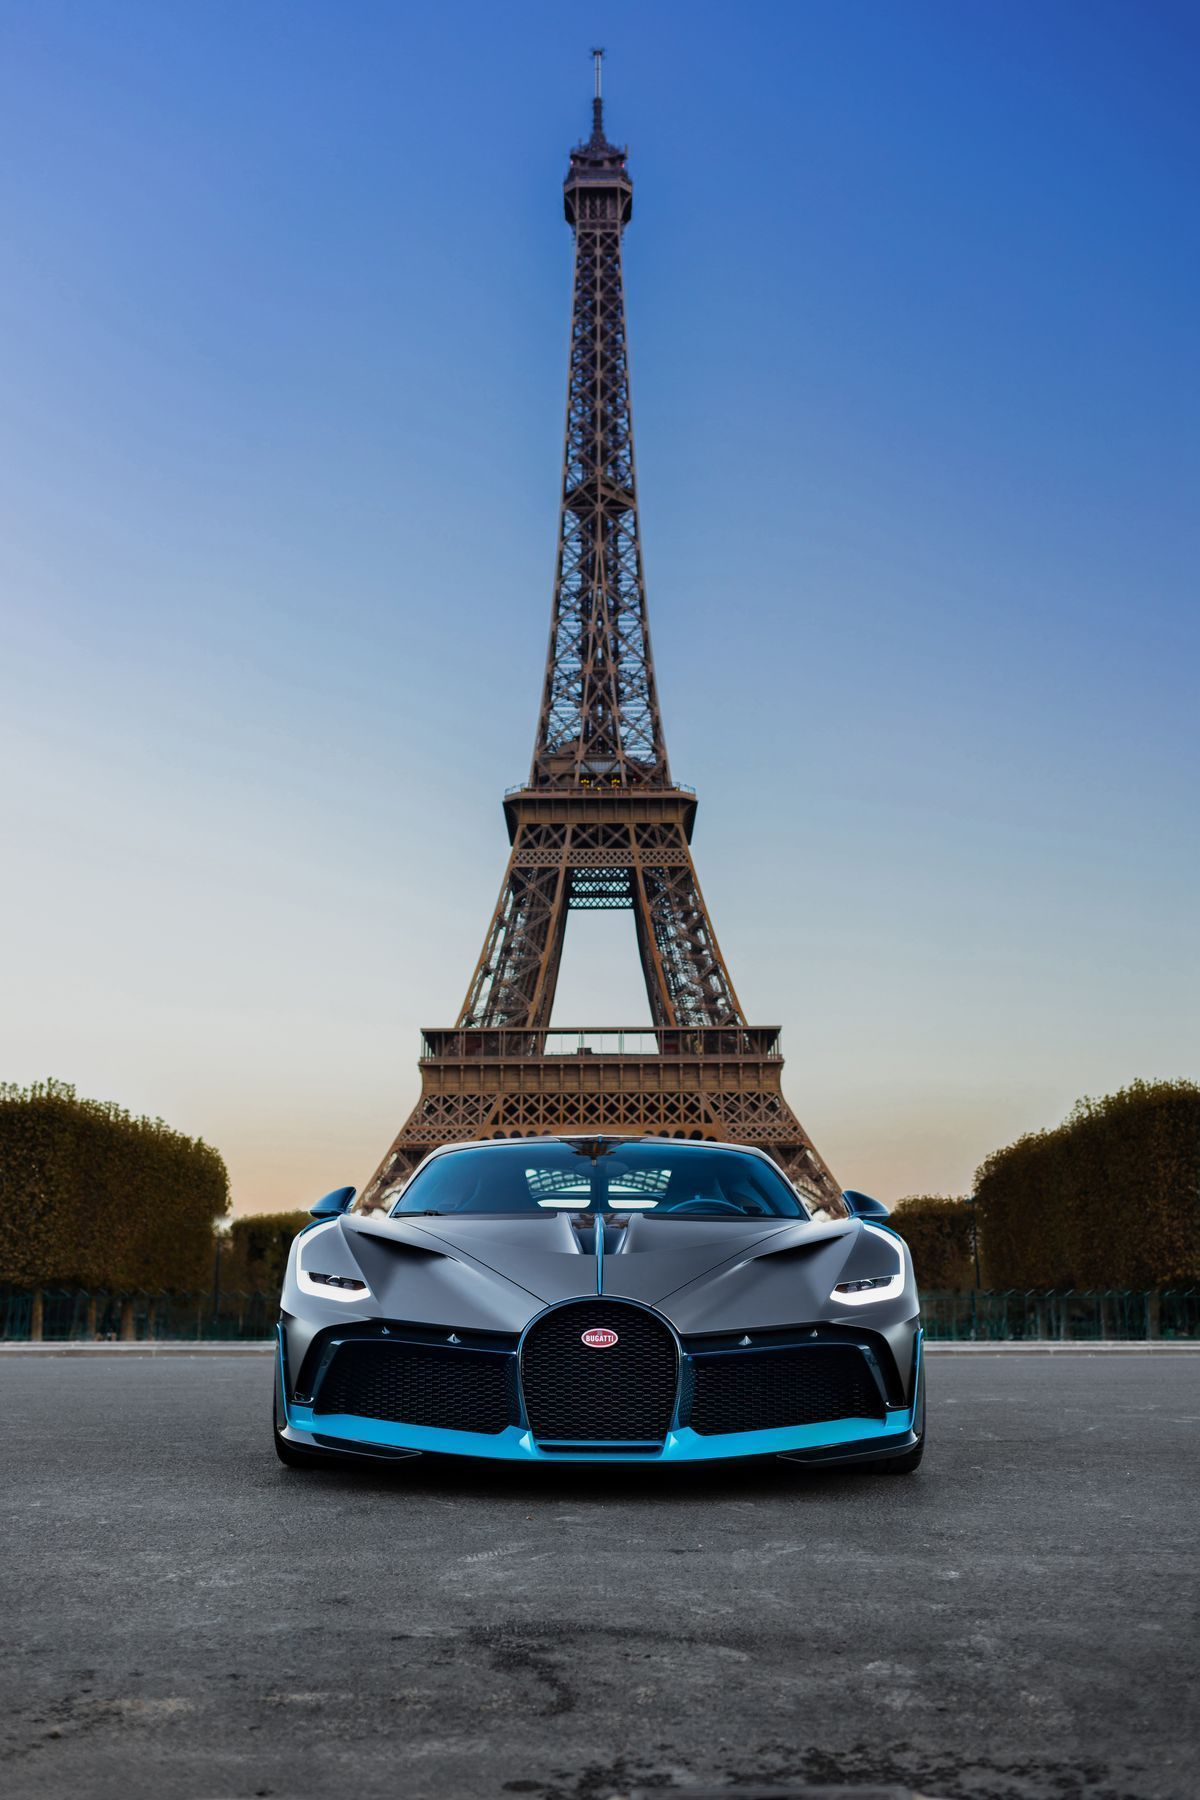 Der Bugatti Divo Posiert In Paris The Newest And Fastest Sports Car Luxury Sports Cars Are High Speed Cars Like The Following Fastest Cars Bugatti Divo Posie In 2020 Fast Sports